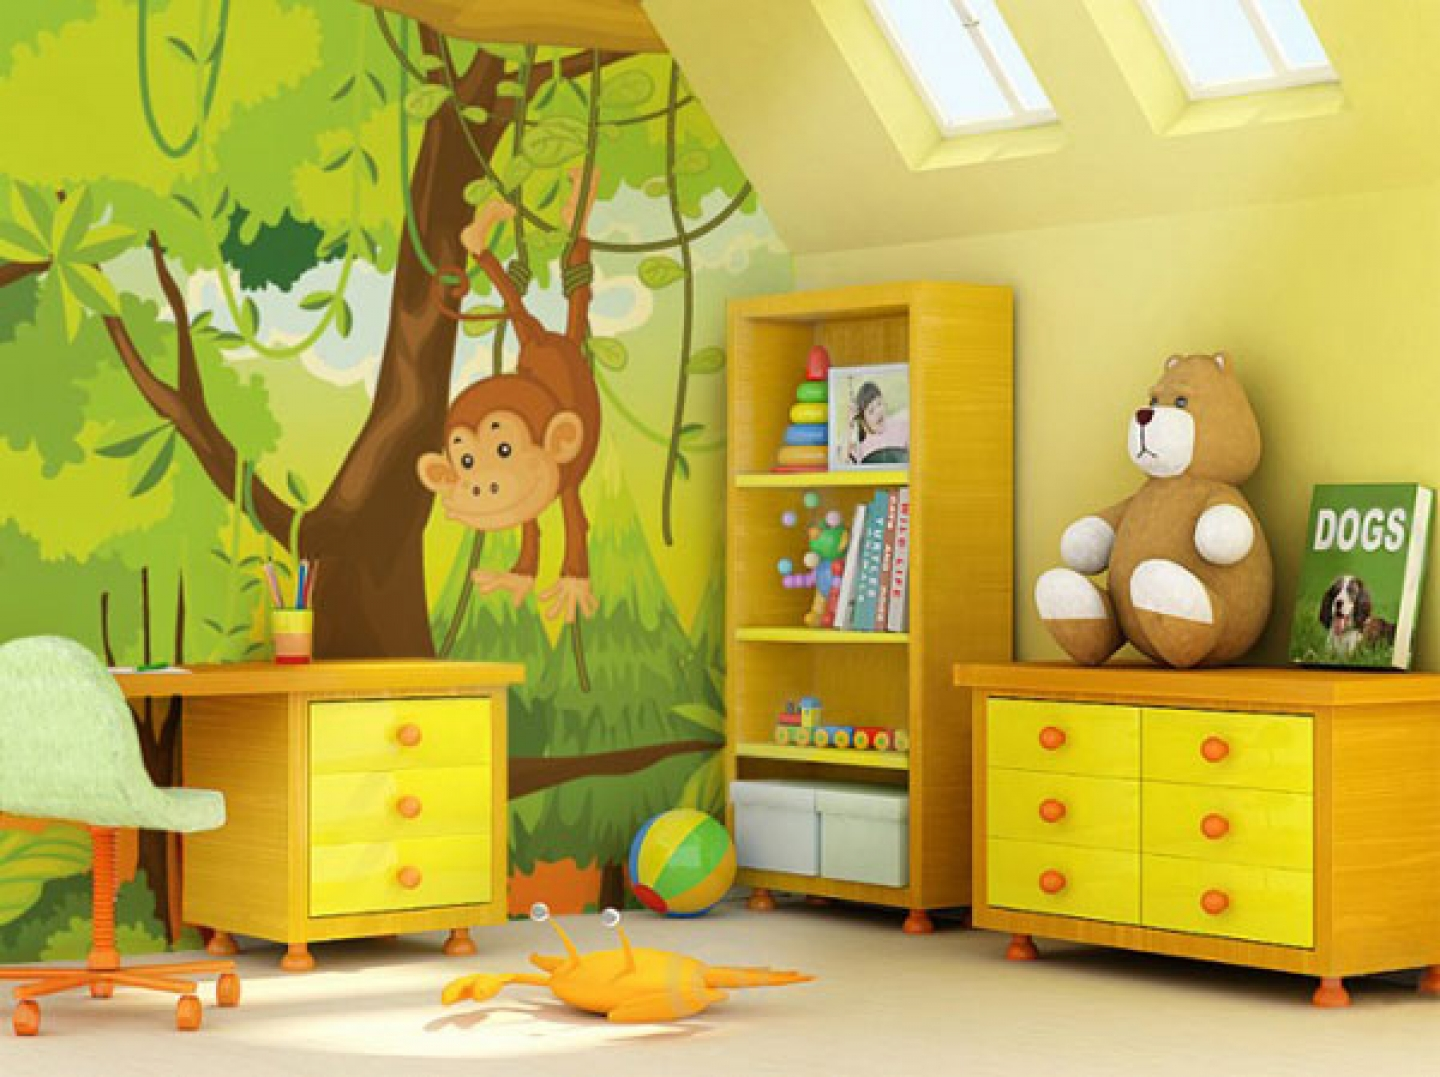 Wallpaper decoration for kids play and study room miauu interior 1440x1077